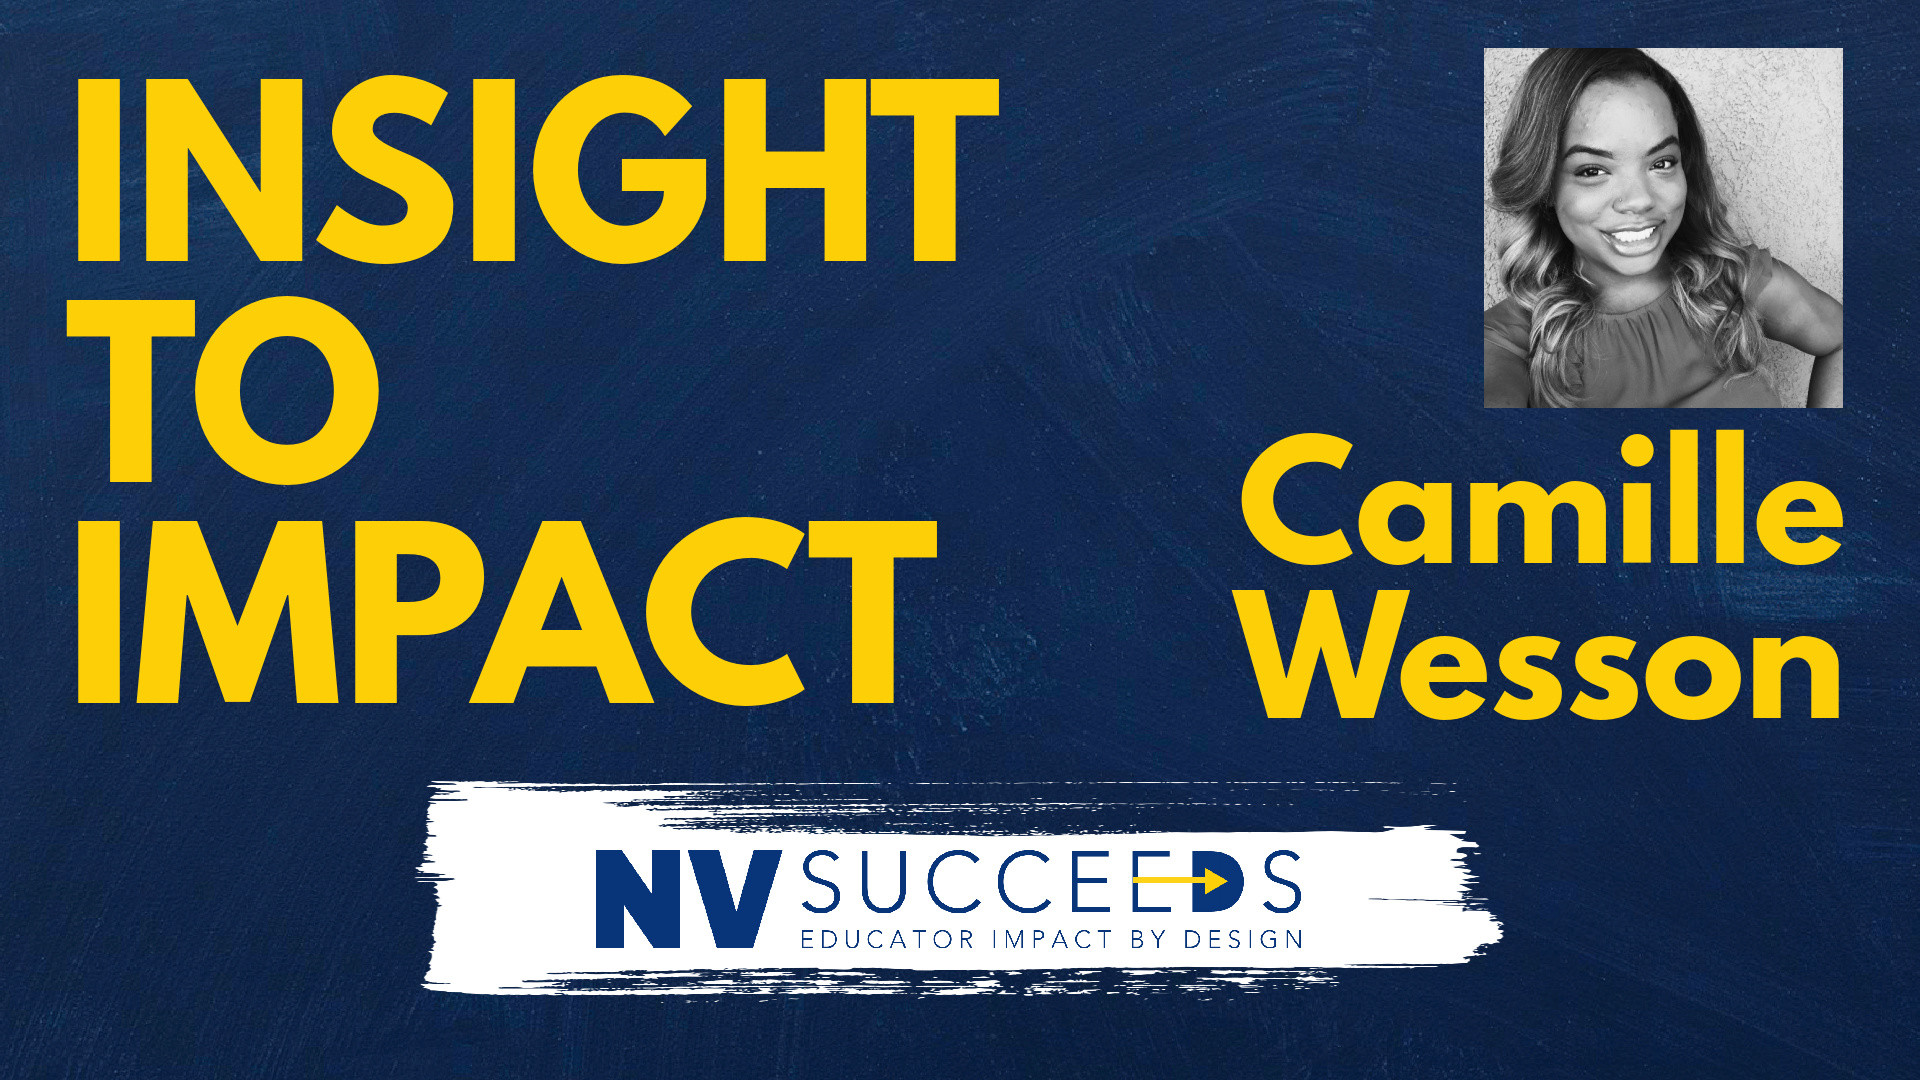 INSIGHT TO IMPACT with Camille Wesson